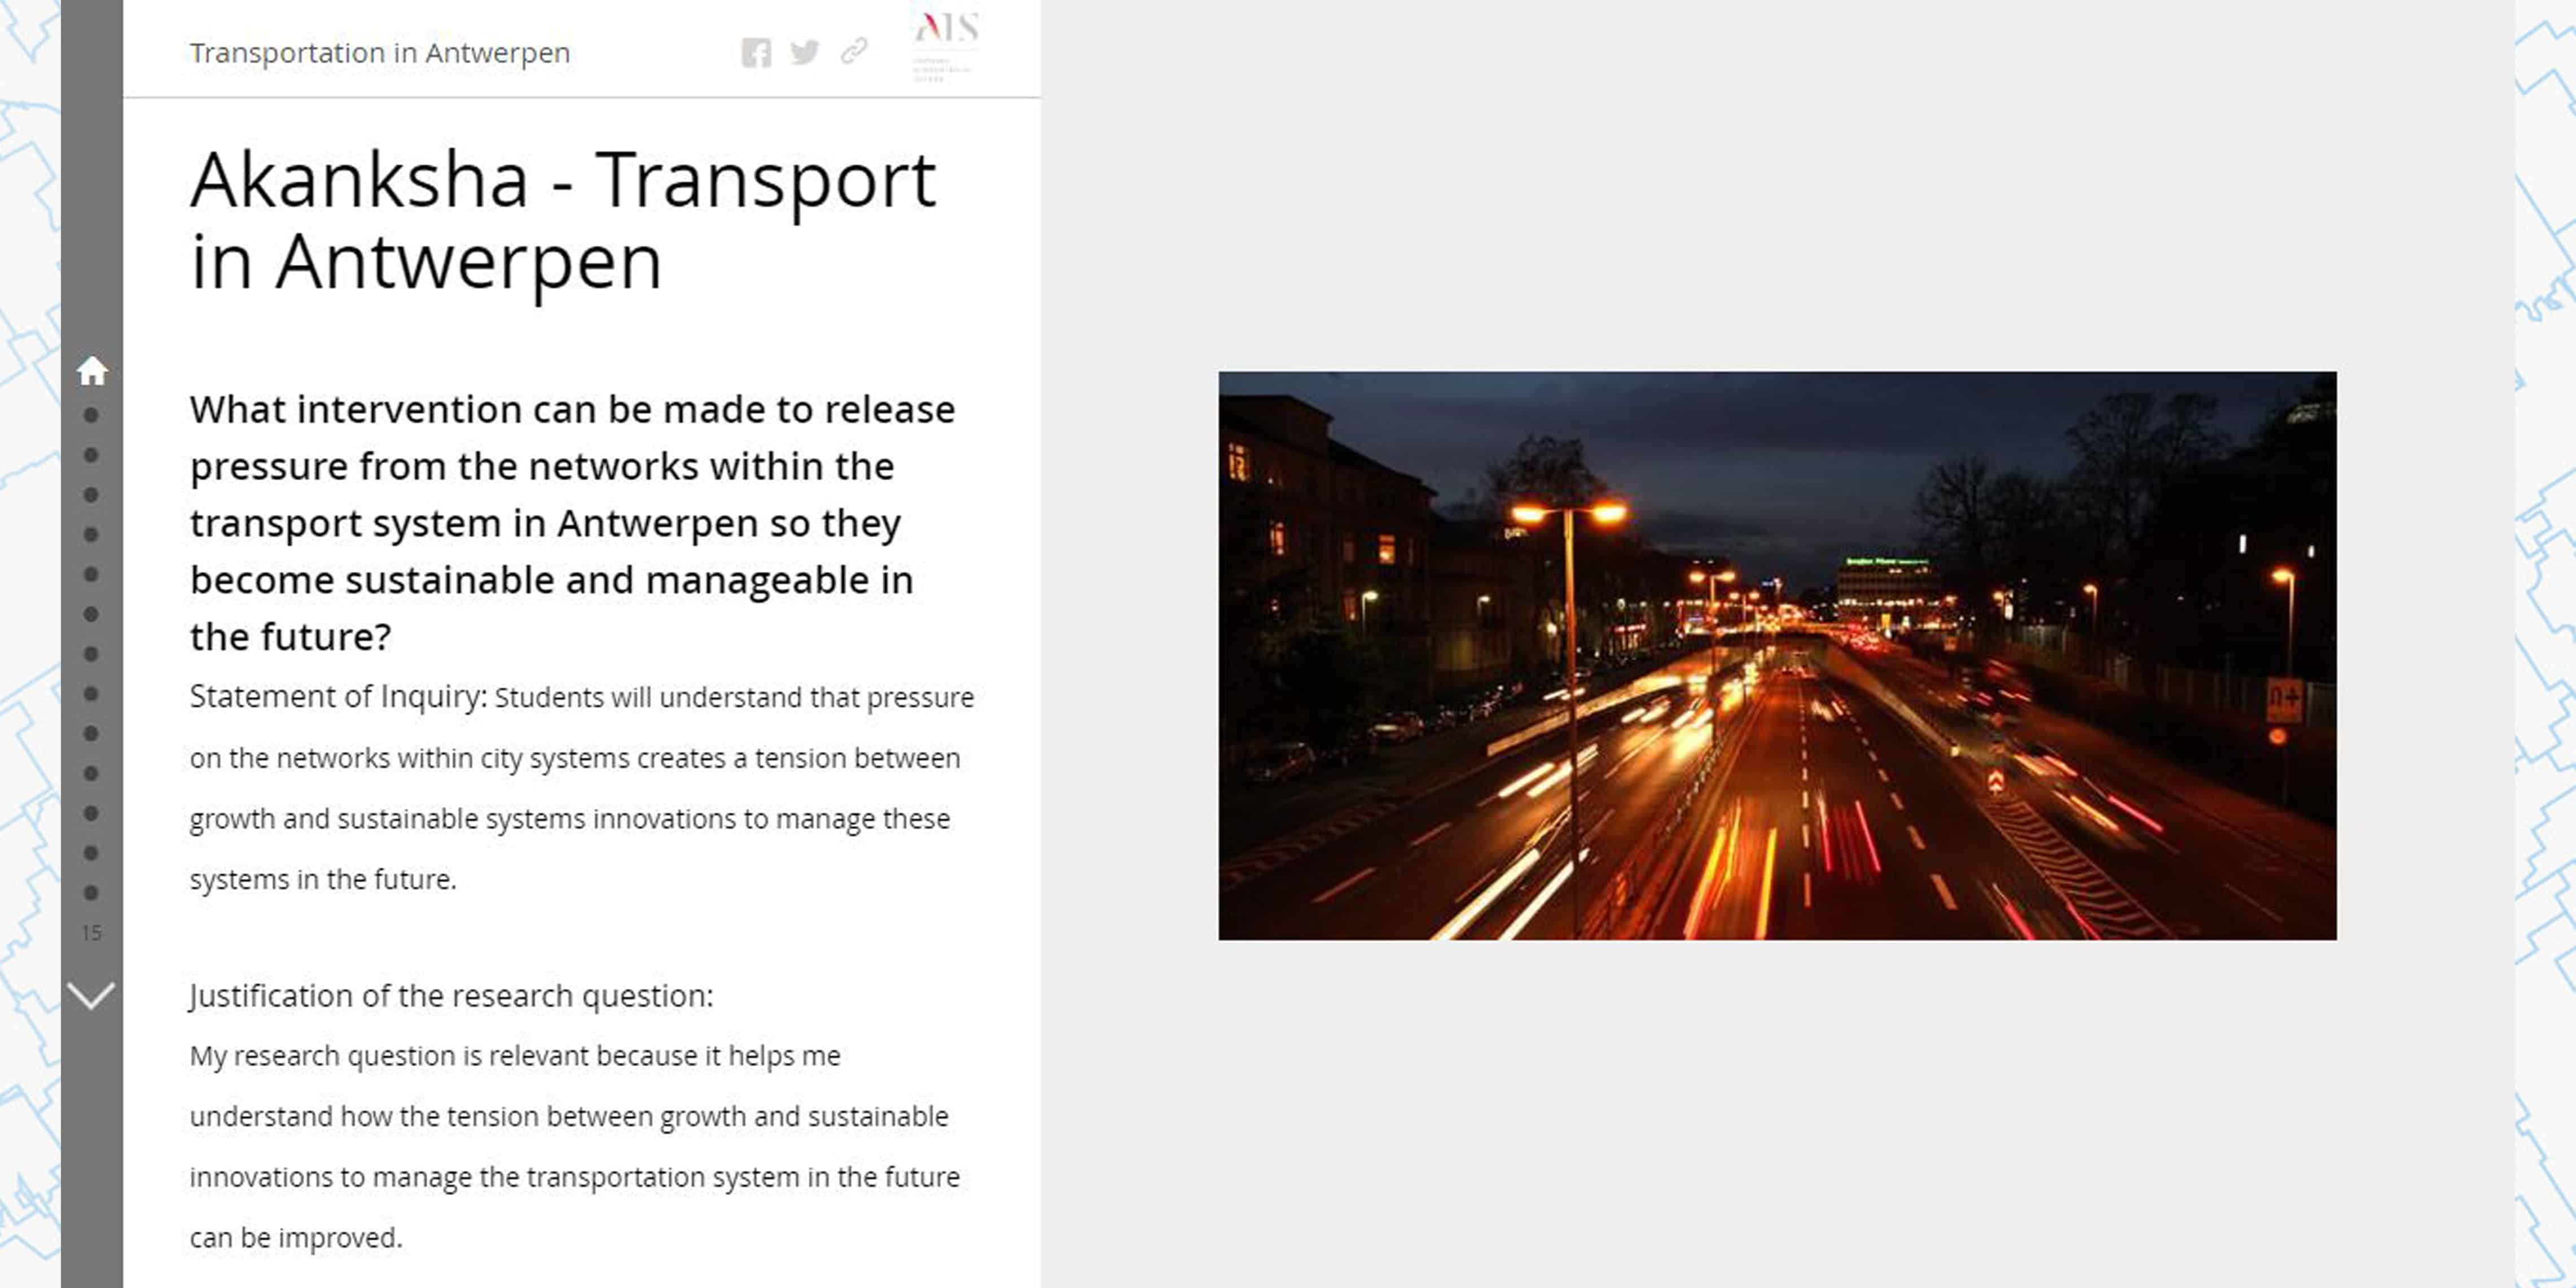 Feature image news - Transportation in Antwerp